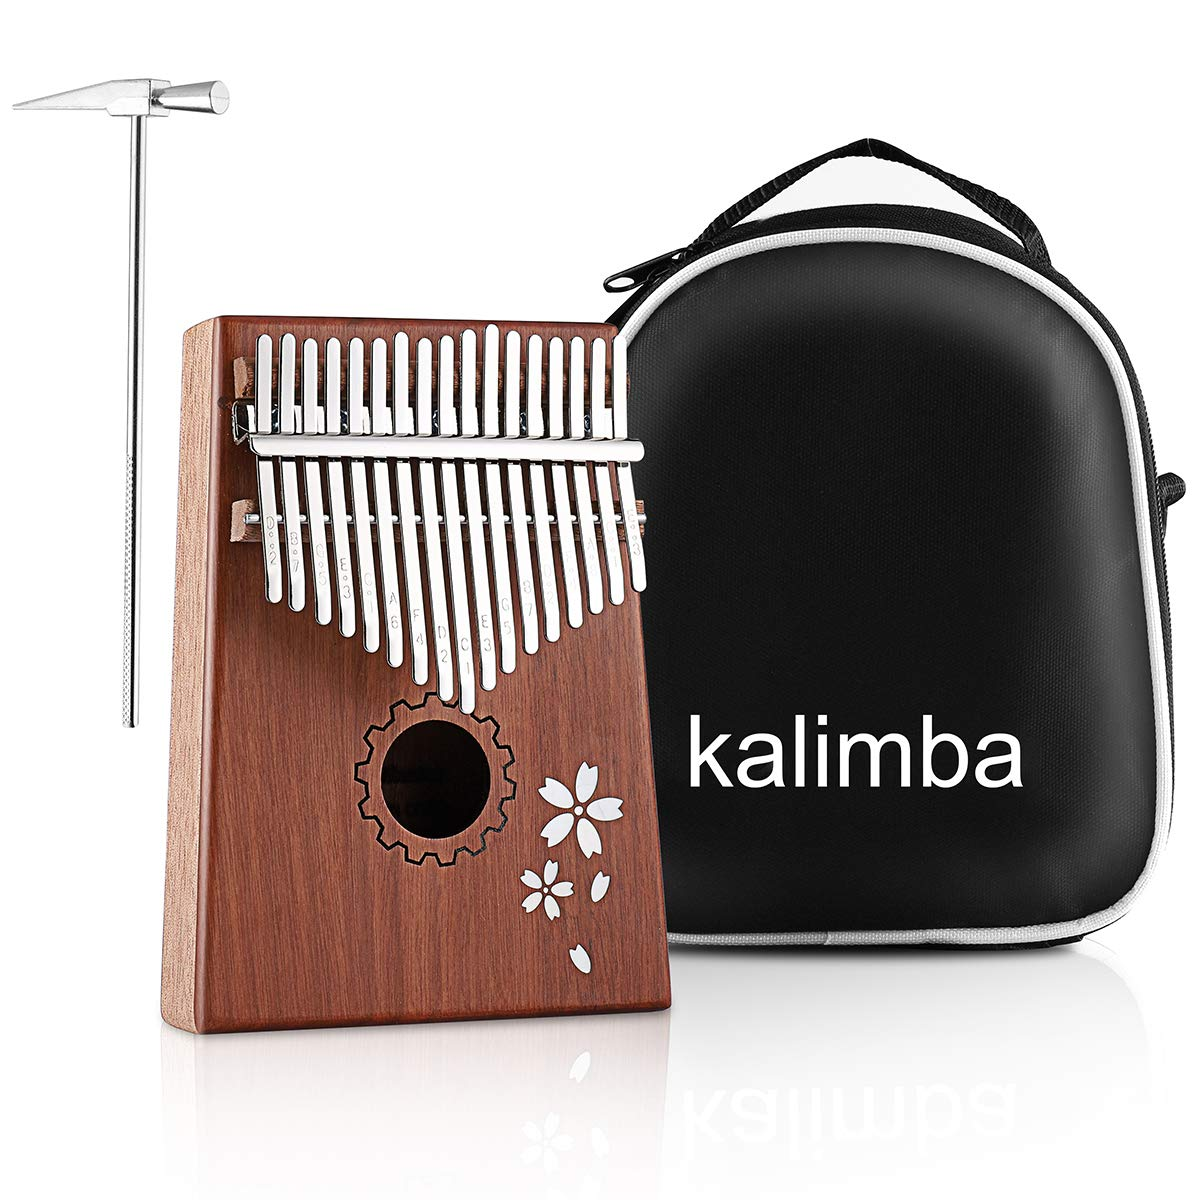 MINGPINHUIUS Kalimba 17 Key Thumb Piano, Mbira Thumb Drive with Bag and Instruction Songbook Portable Musical Instrument for Kids, Friends,Beginners,Music Lovers (Cherry blossom) by MINGPINHUIUS